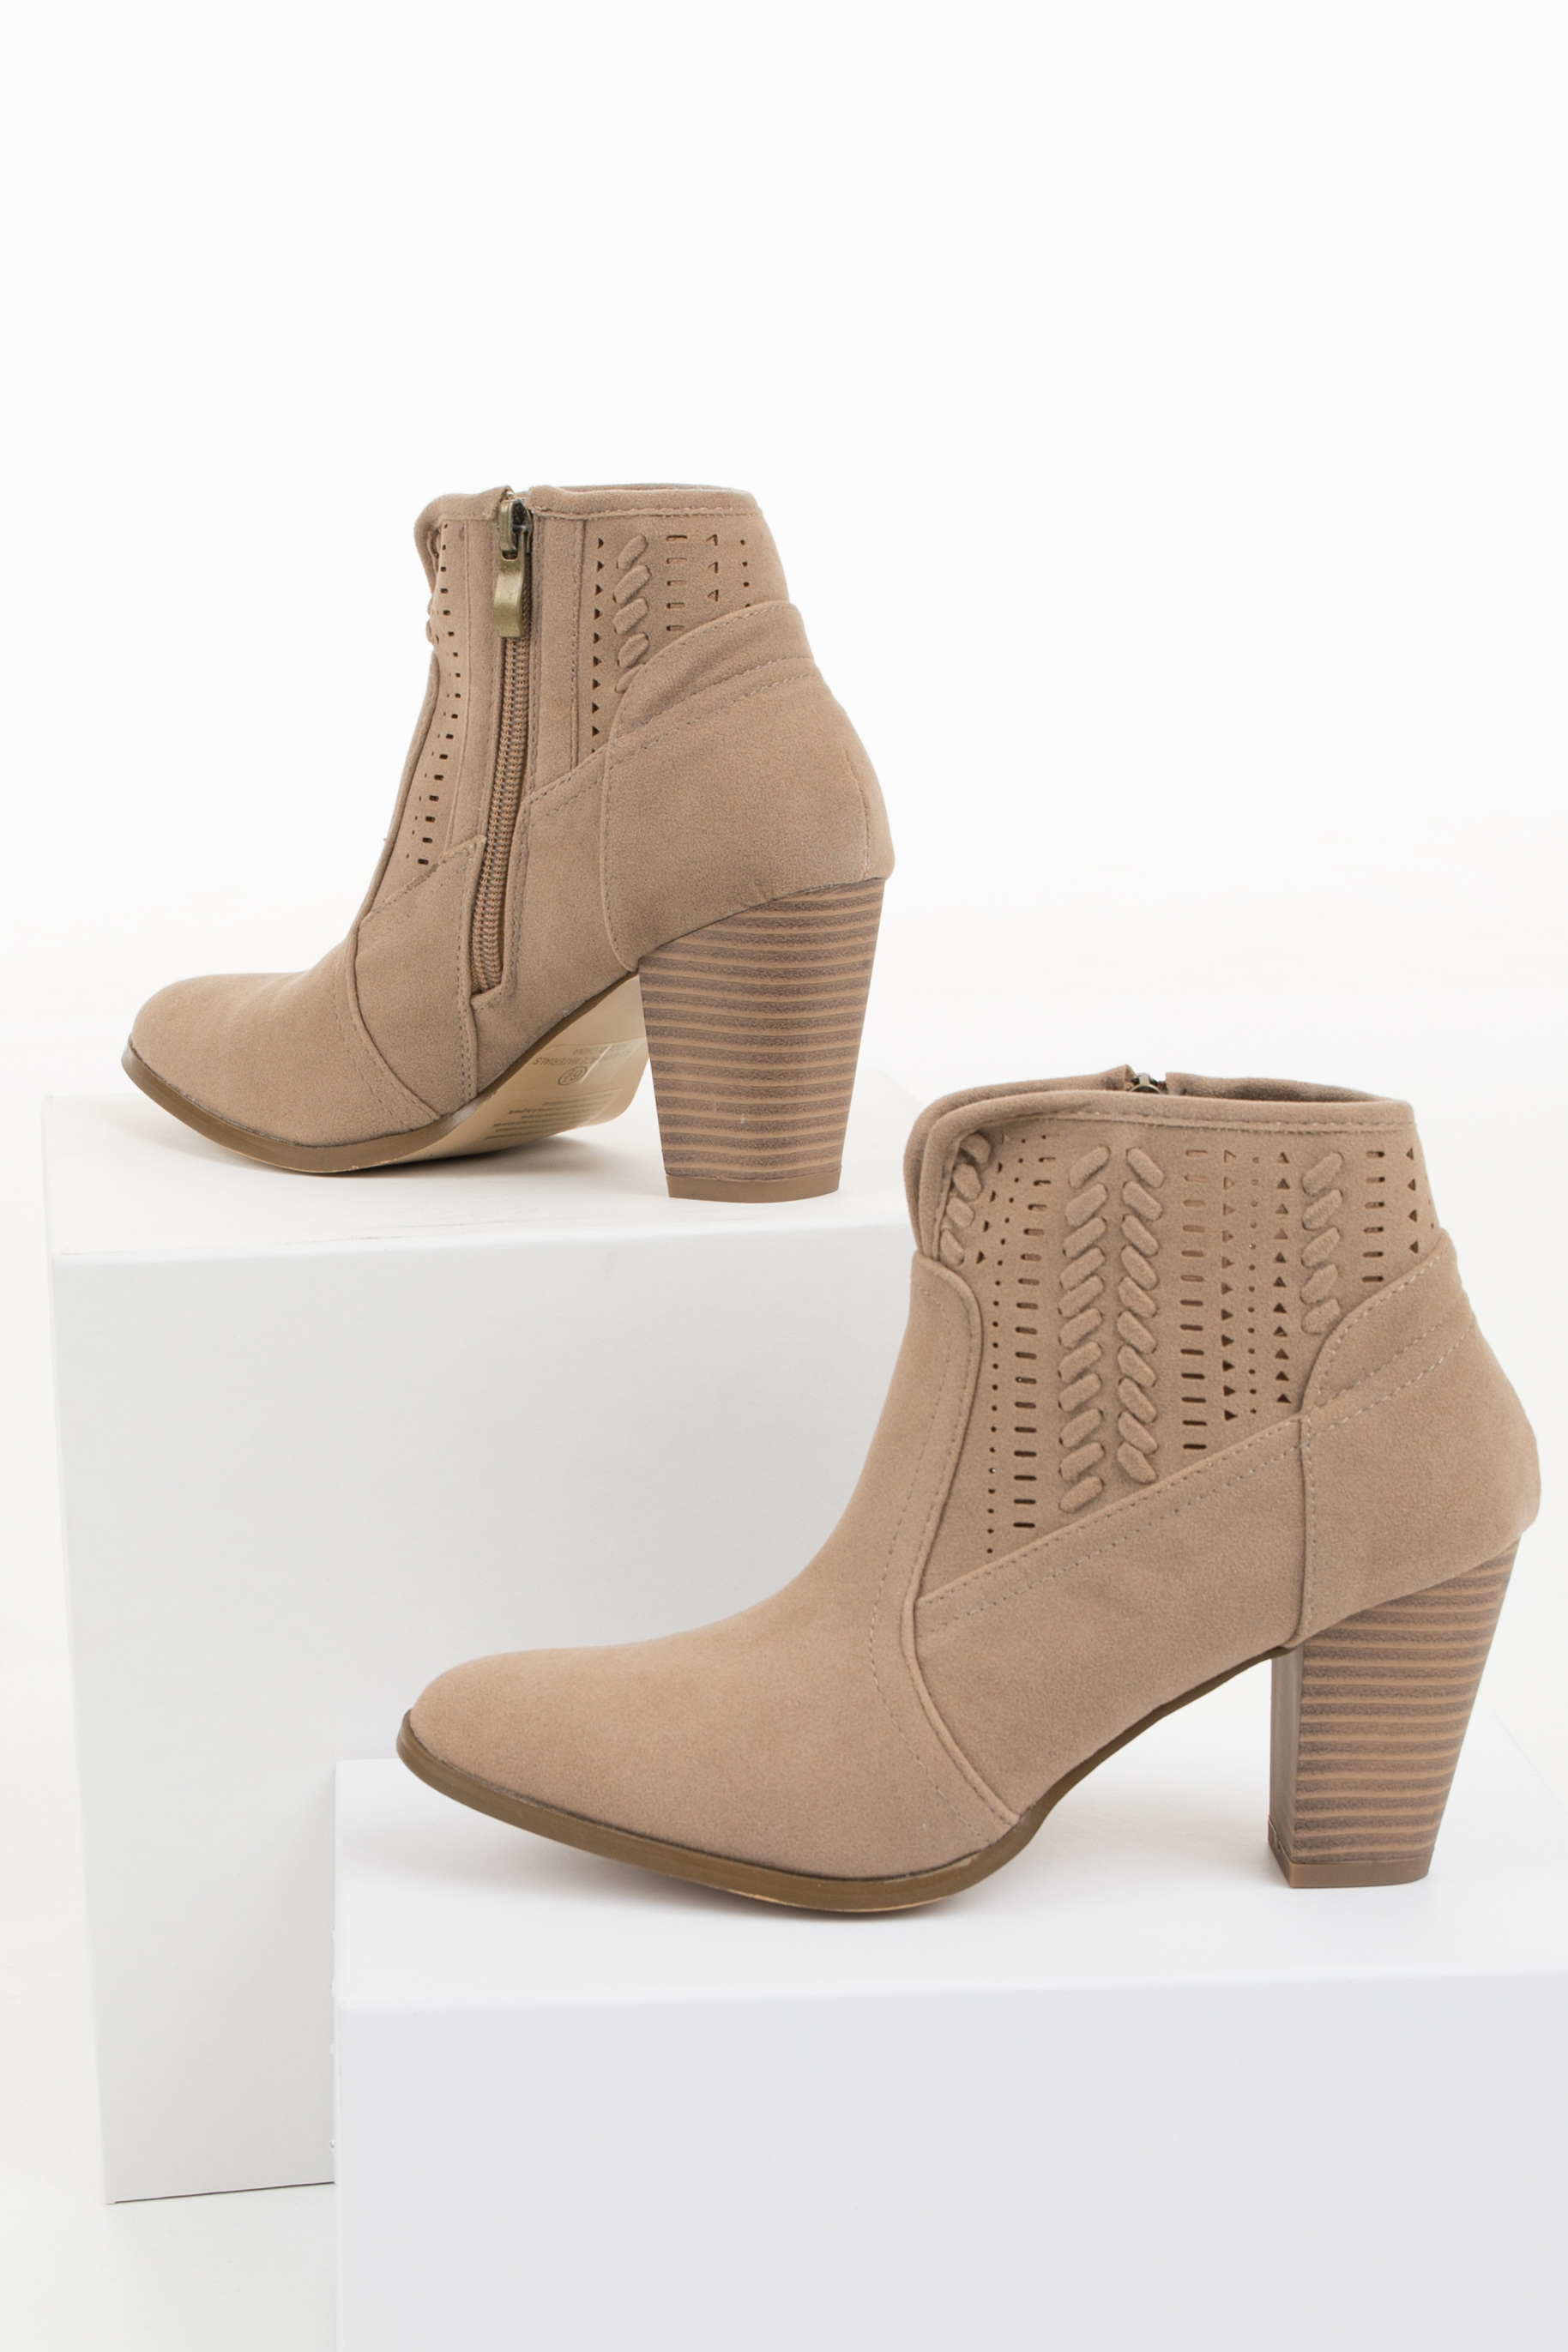 Taupe High Heeled Ankle Booties with Perforated Details detail